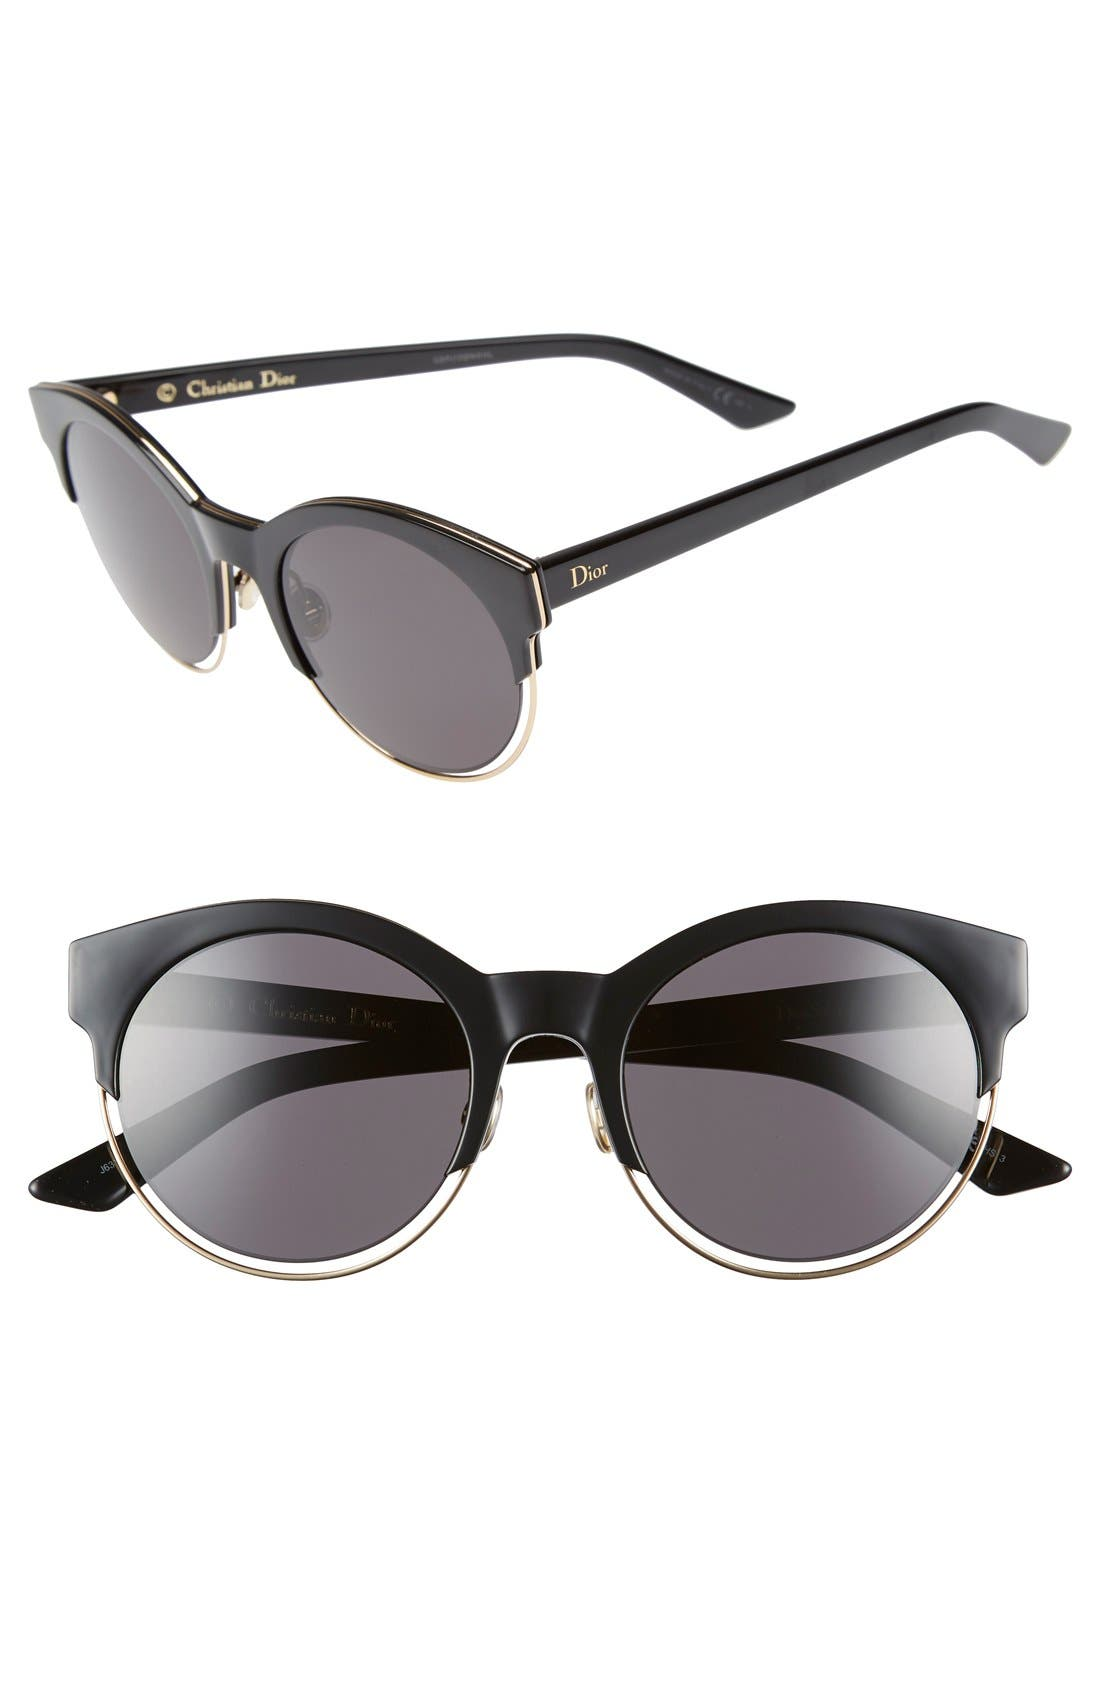 Siderall 1 53mm Round Sunglasses,                             Main thumbnail 1, color,